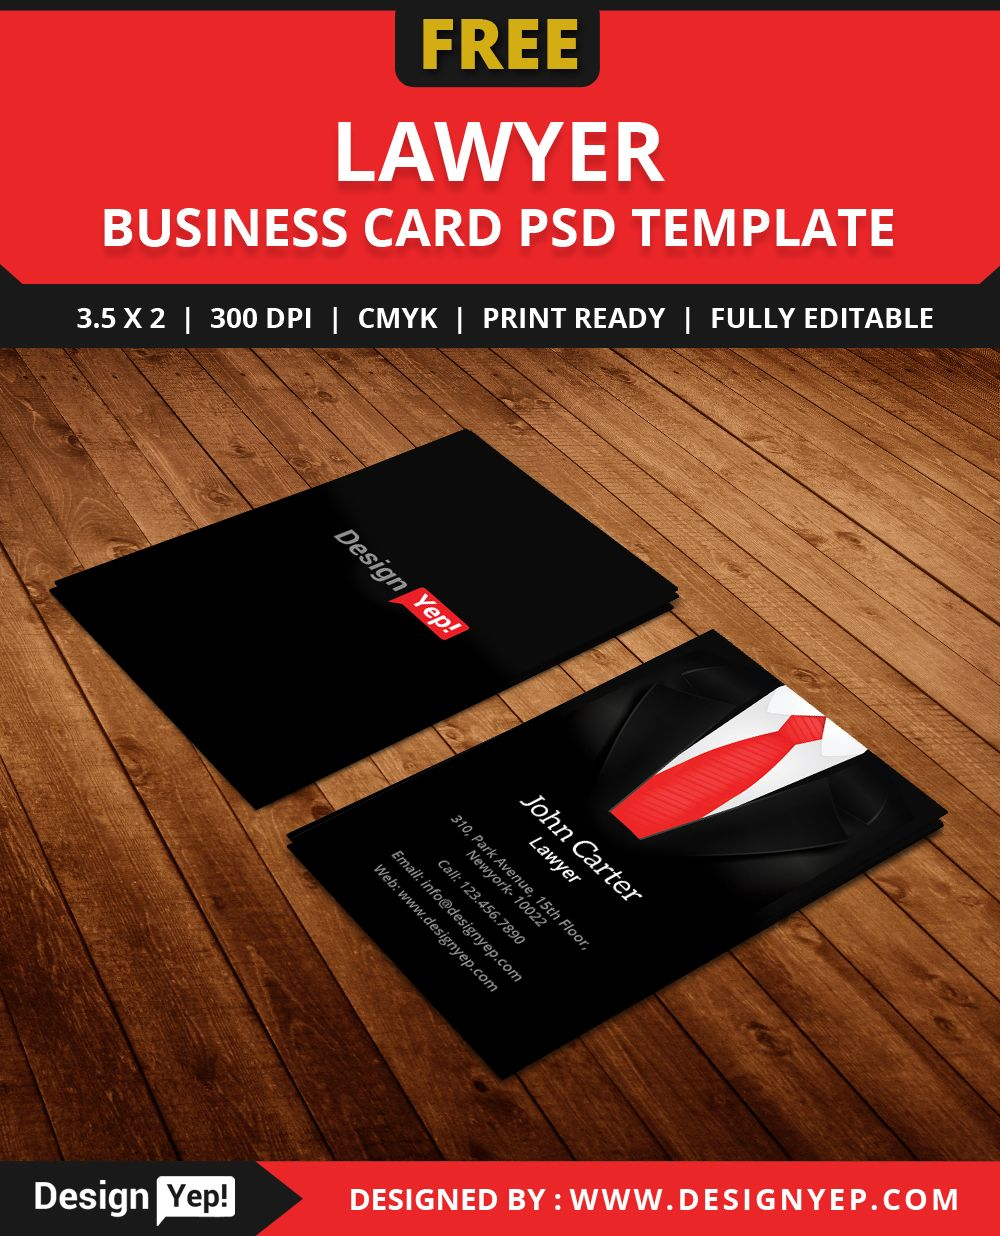 Free lawyer business card template psd free business card free lawyer business card template psd cheaphphosting Image collections